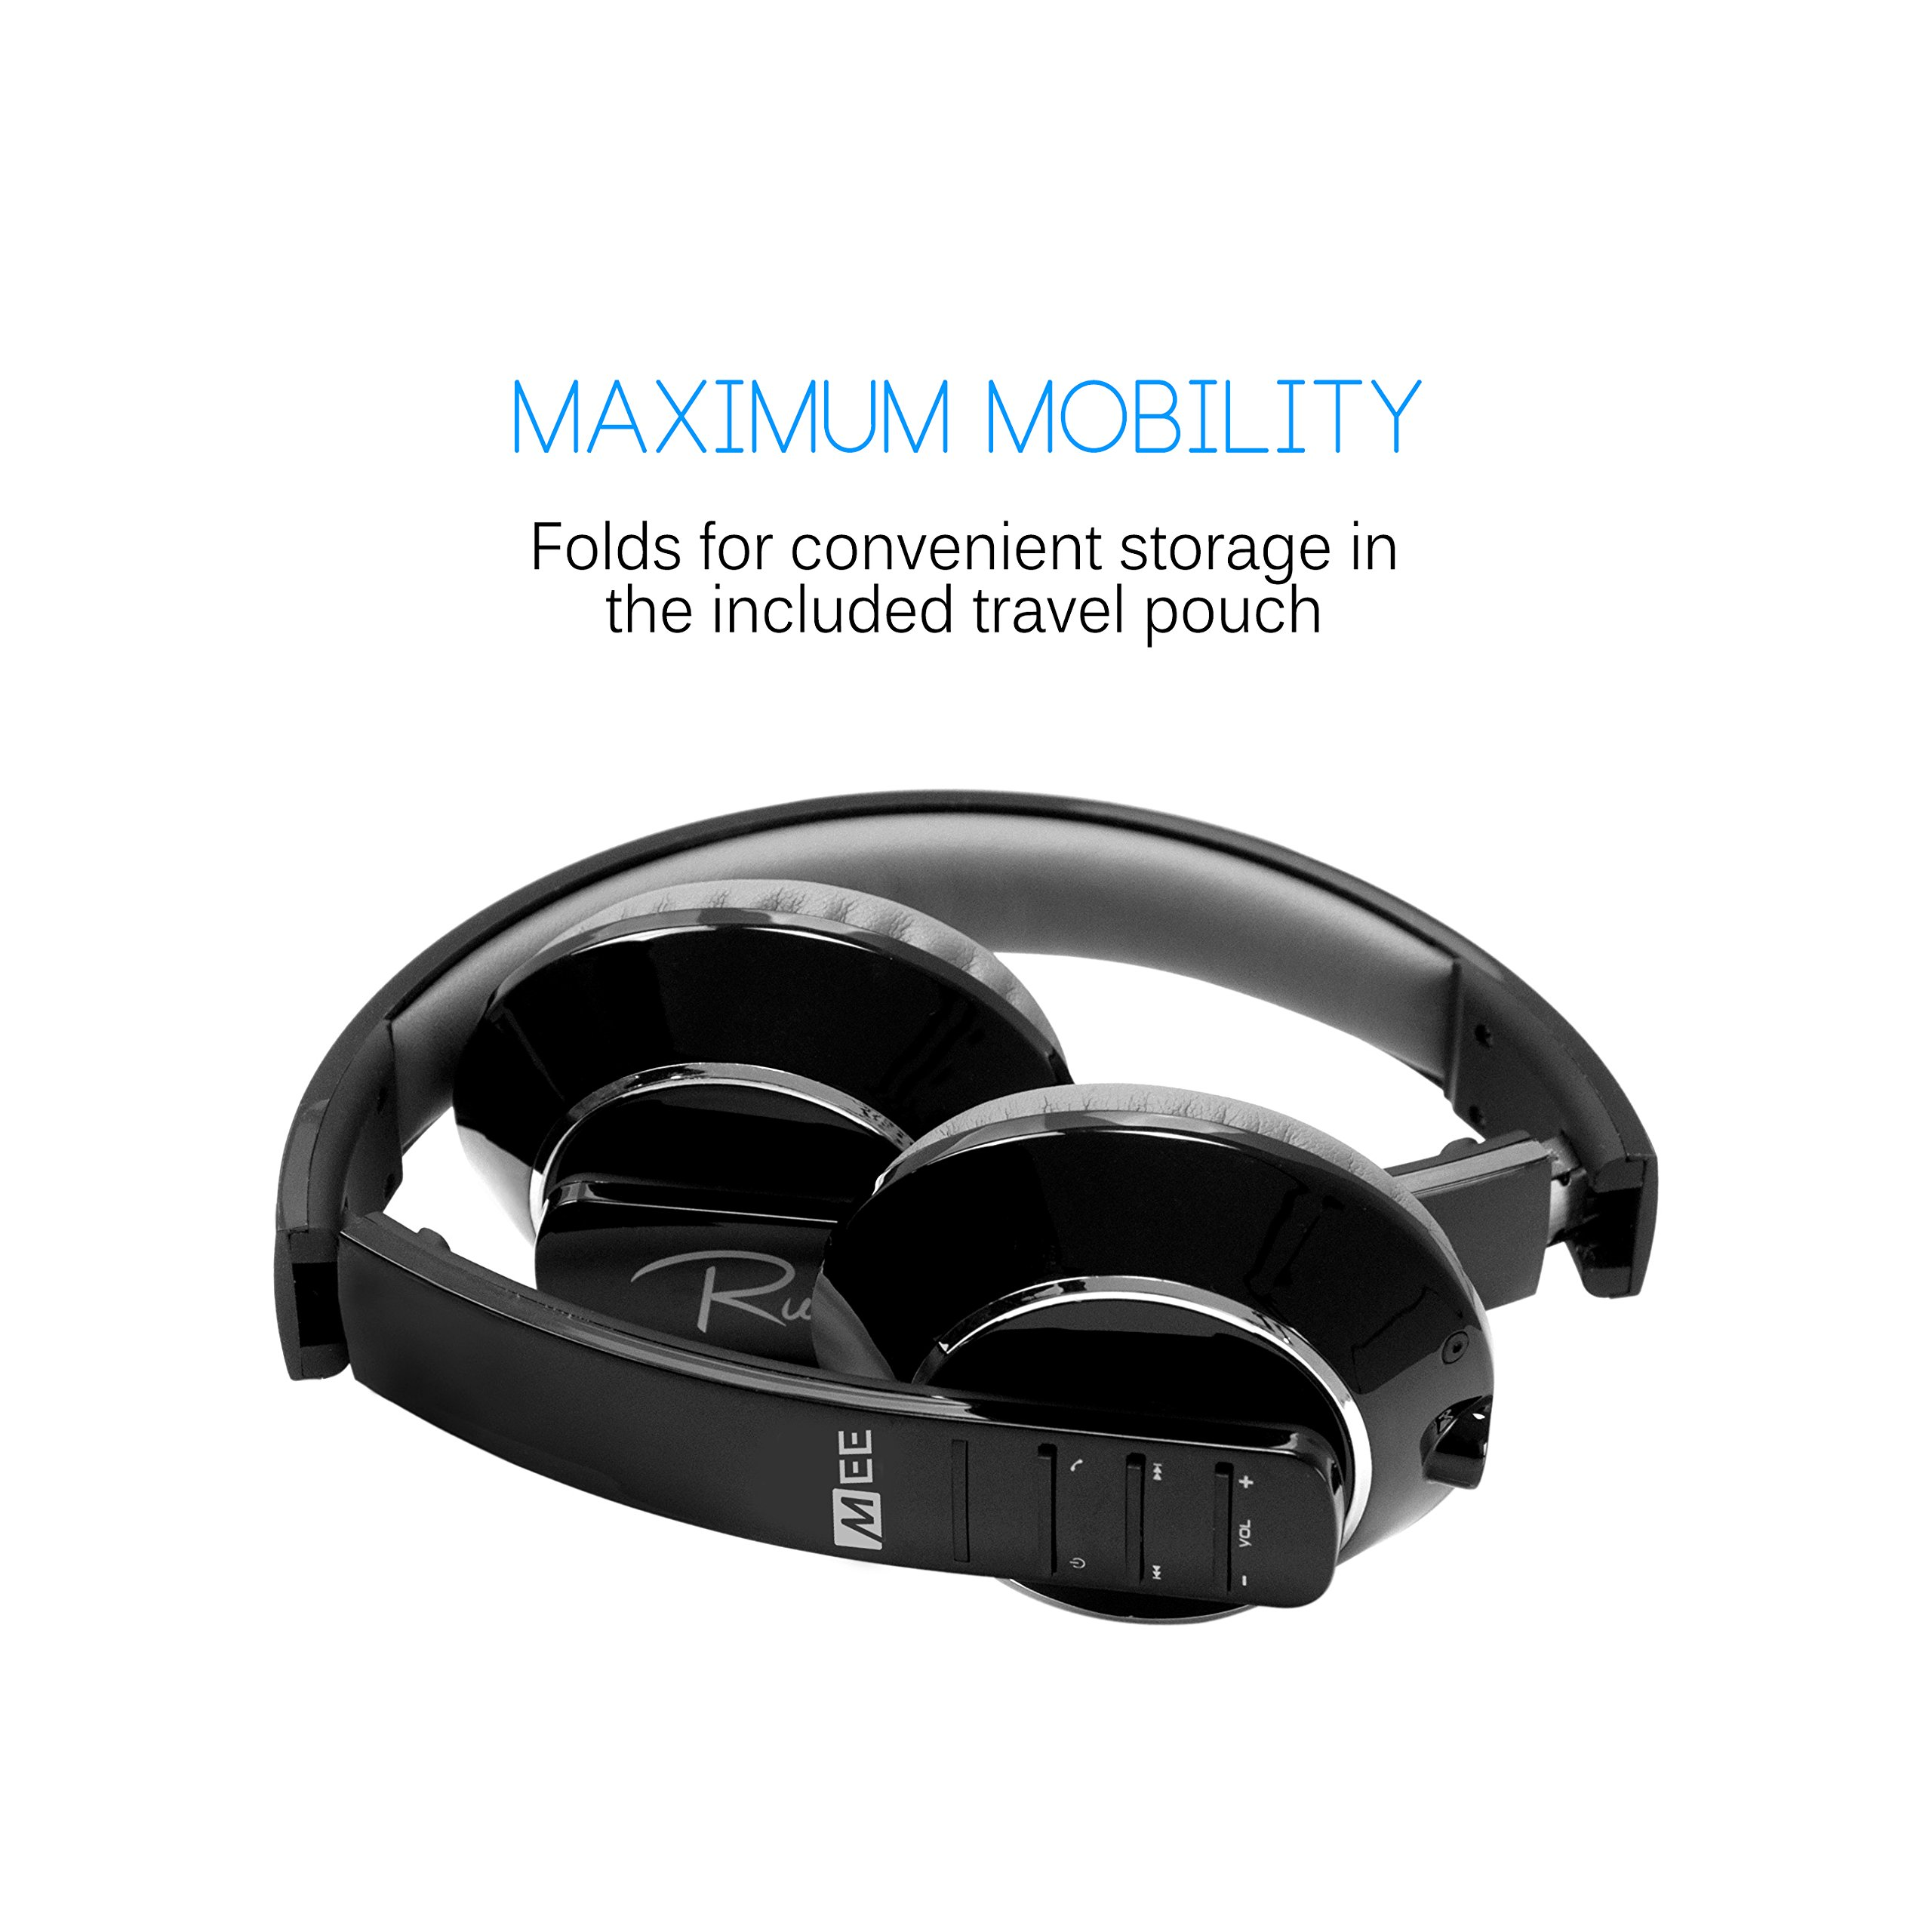 MEE audio Runaway 4.0 Bluetooth Stereo Wireless + Wired Headphones with Microphone (Black) by MEE audio (Image #5)